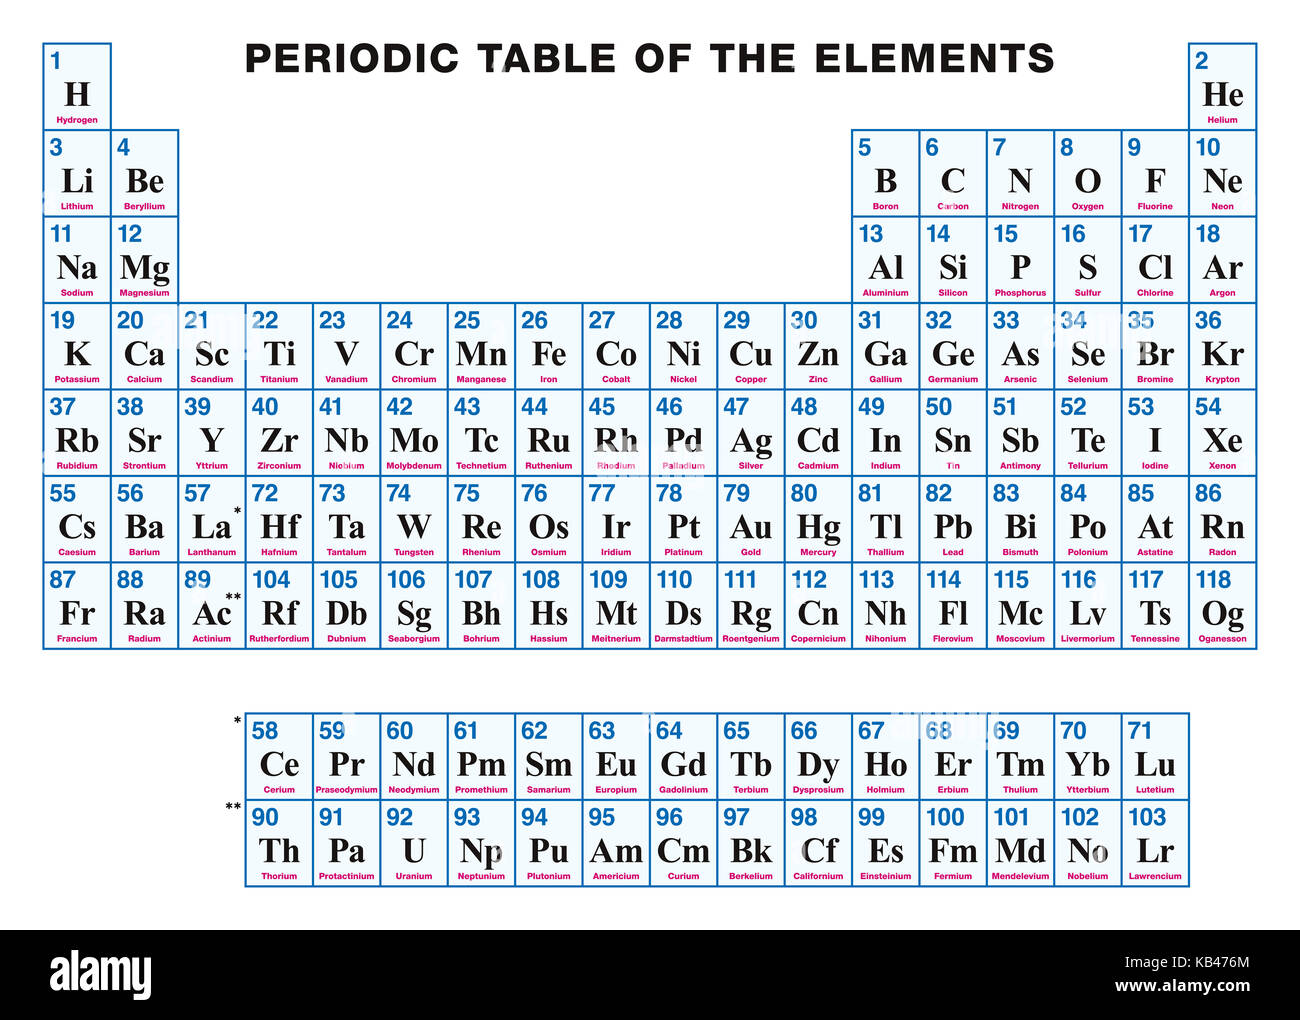 Periodic table of elements stock photos periodic table of elements periodic table of the elements english tabular arrangement of chemical elements with their atomic urtaz Image collections